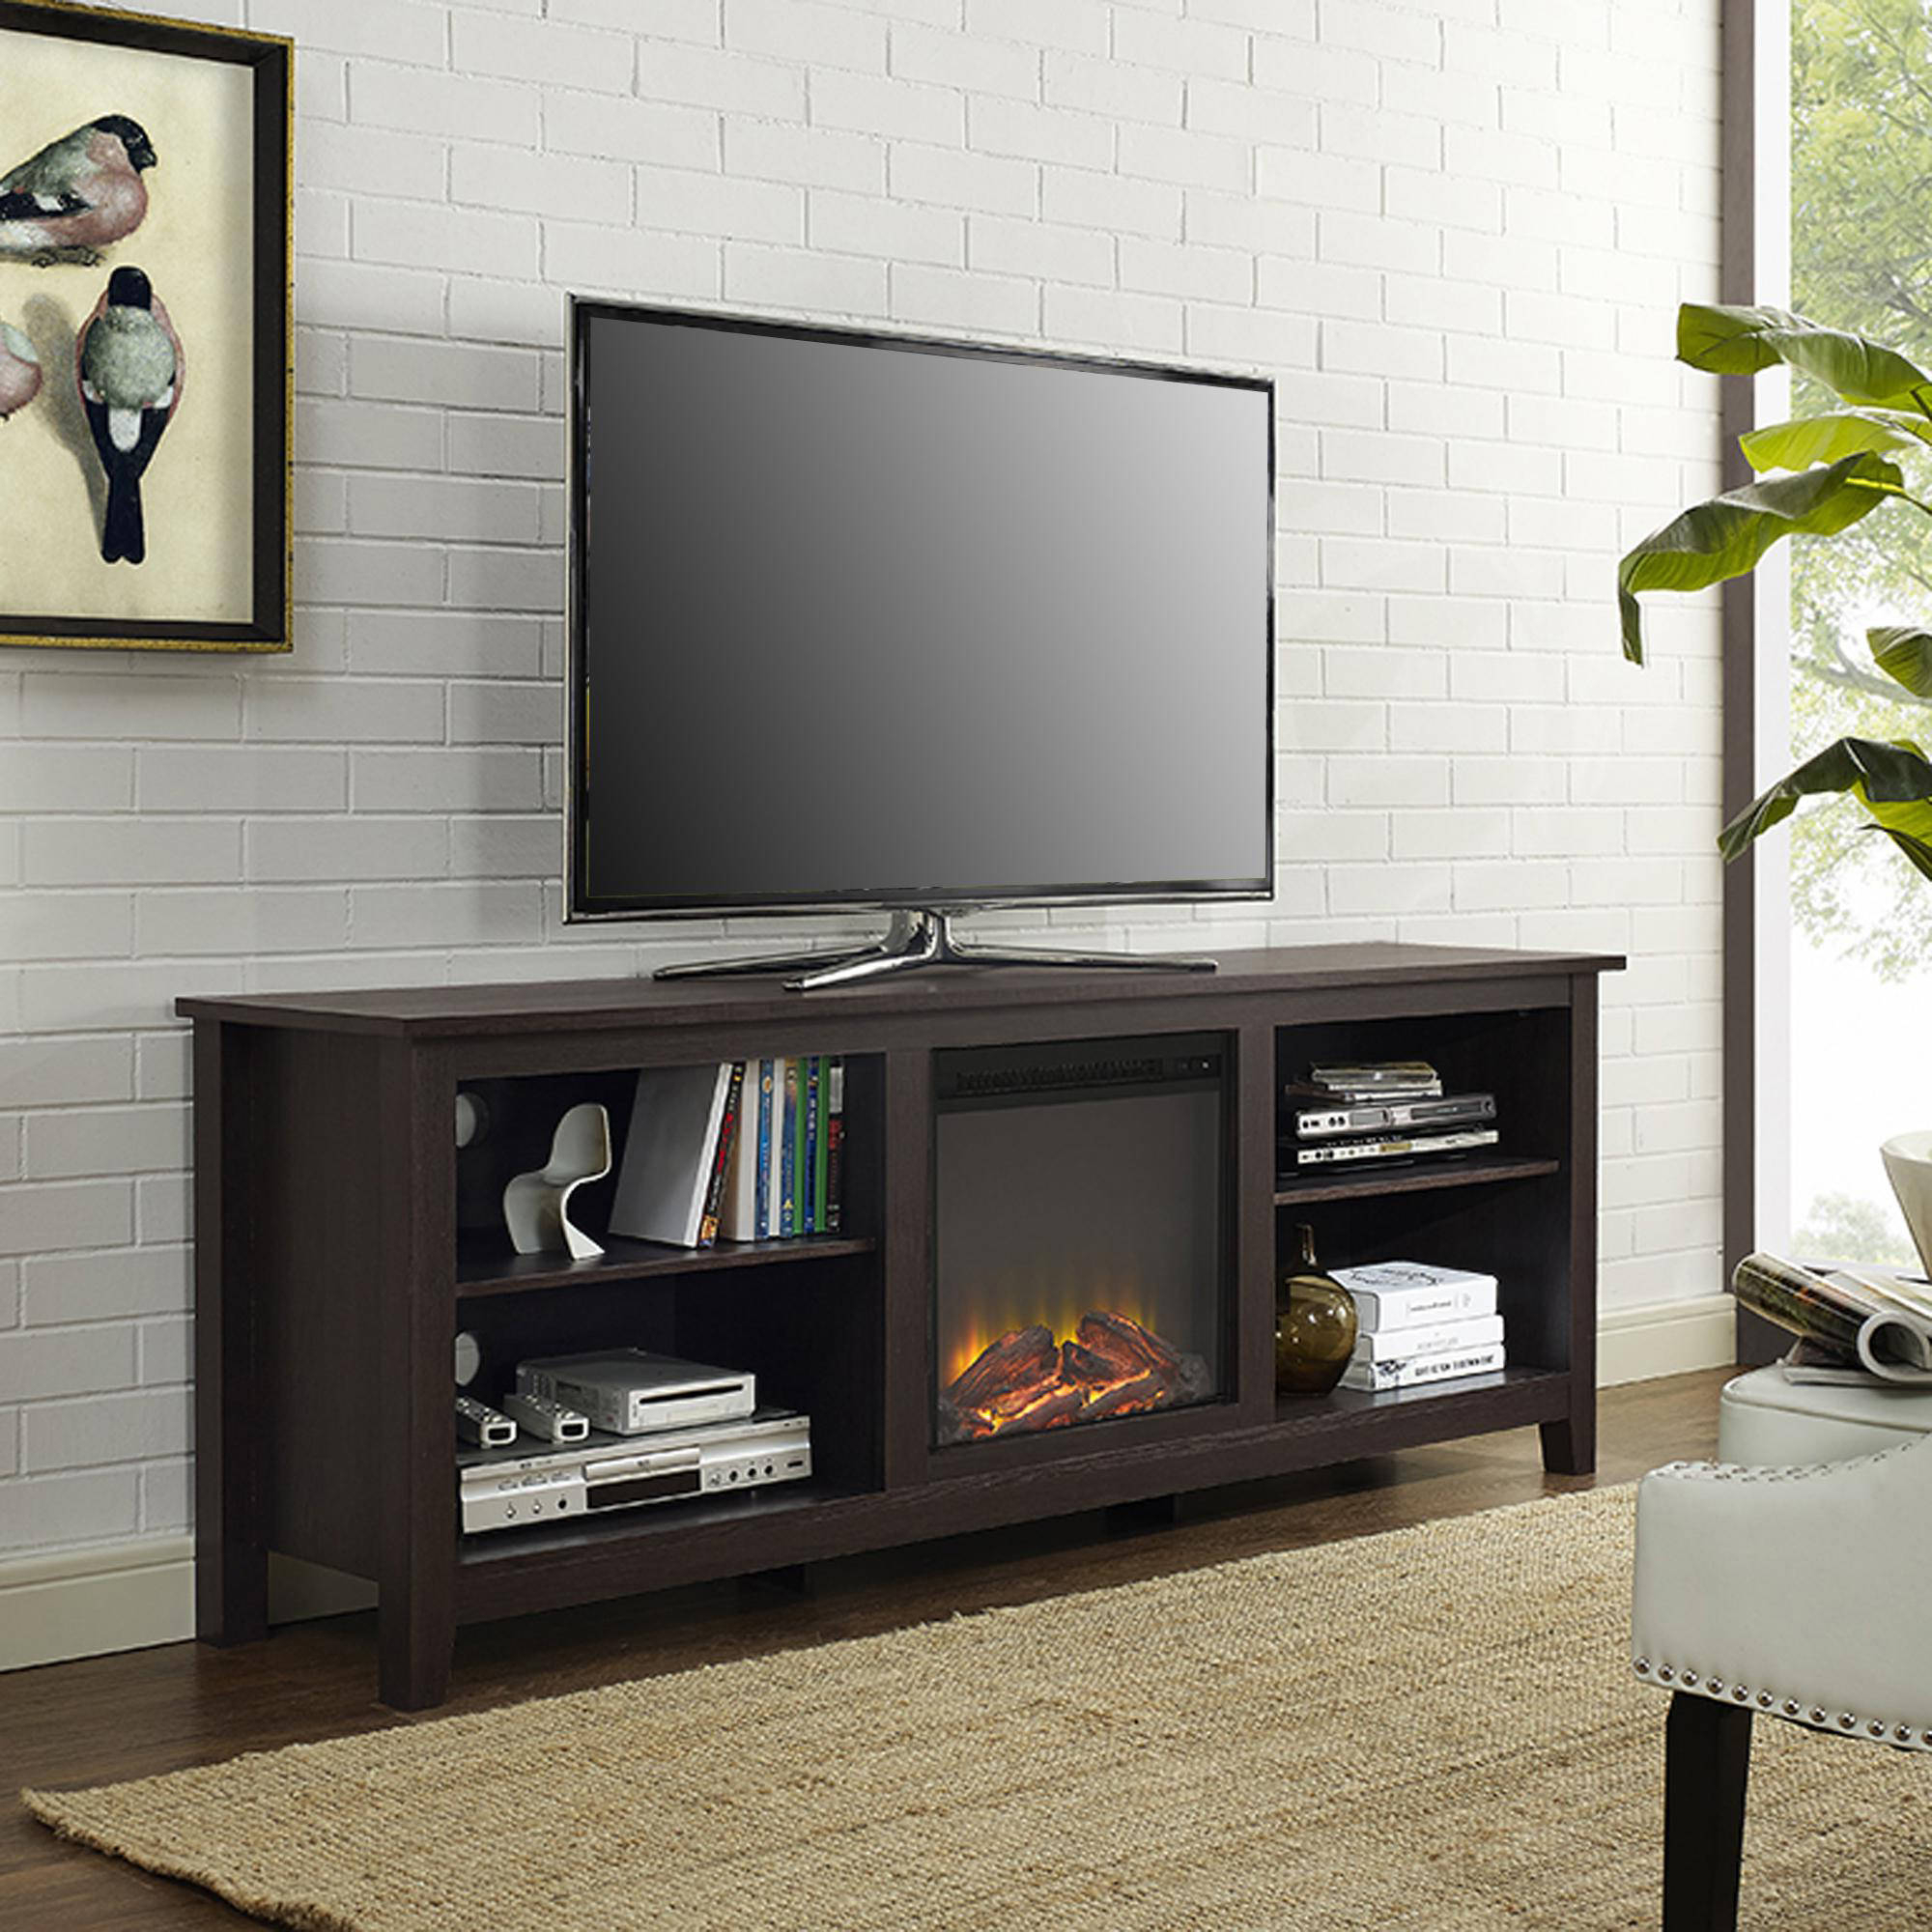 Tv Stands & Entertainment Centers – Walmart With Regard To Famous Kai 63 Inch Tv Stands (View 14 of 20)